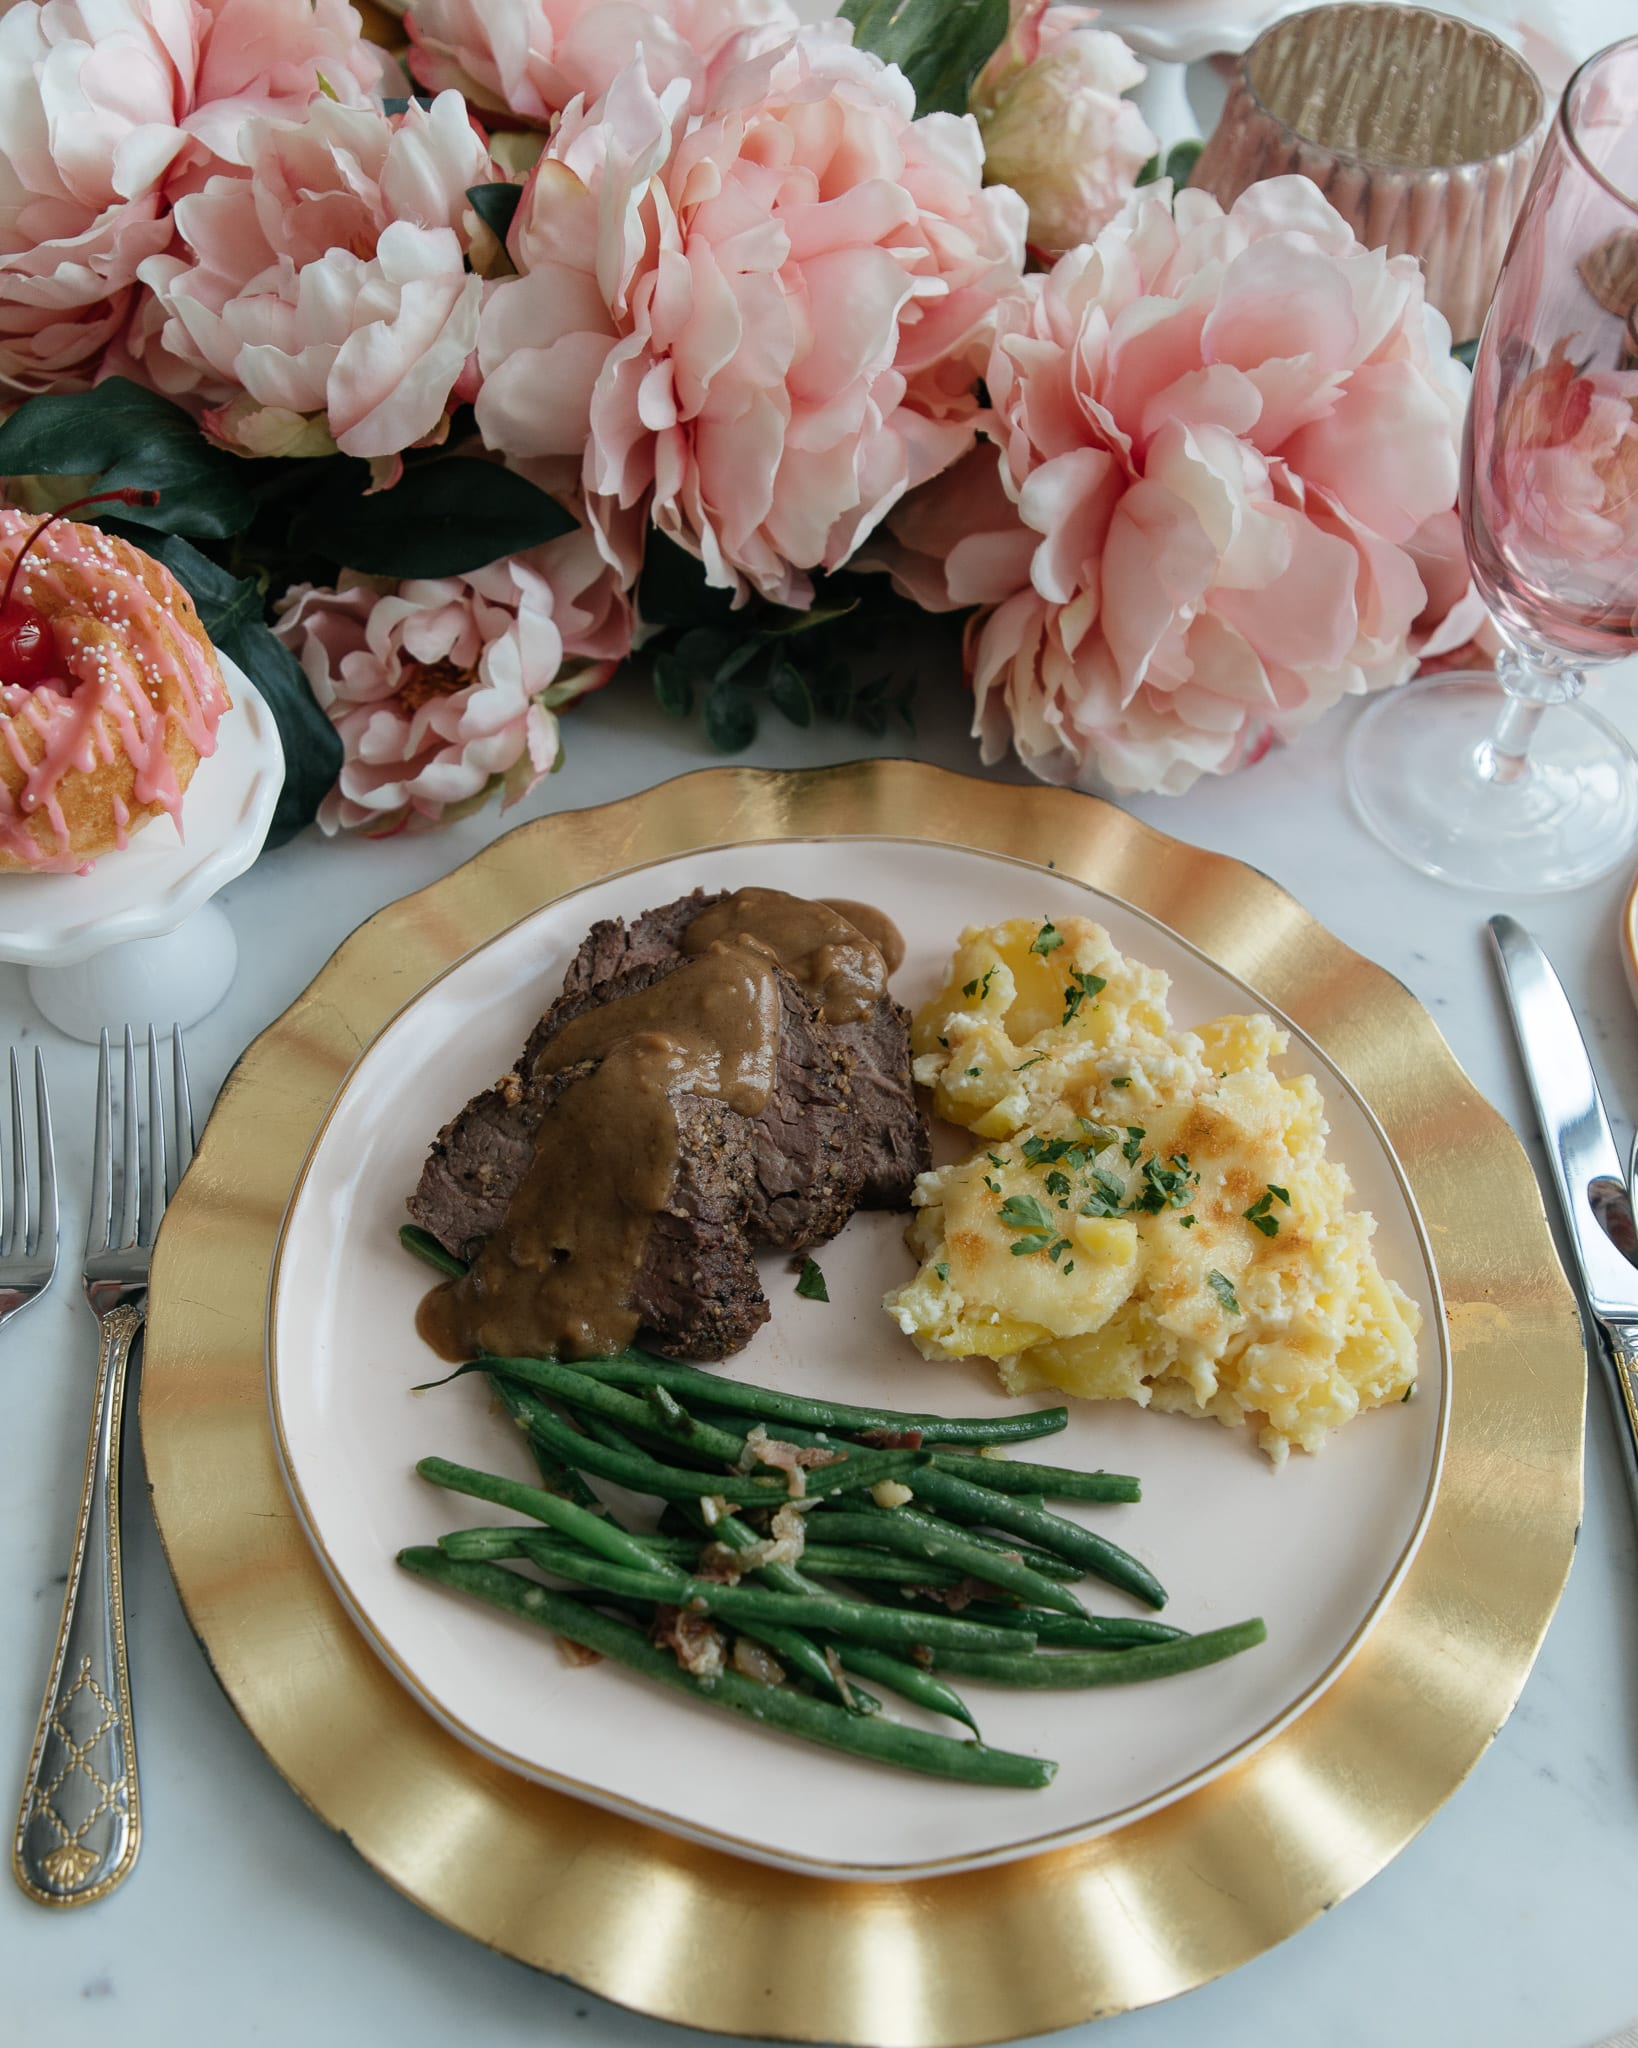 Roasted Beef Tenderloin main course beef recipes dinner ideas beef tenderloin roasting meat scalloped potatoes green beans side dish cooking main course fontina cheese potatoes recipes